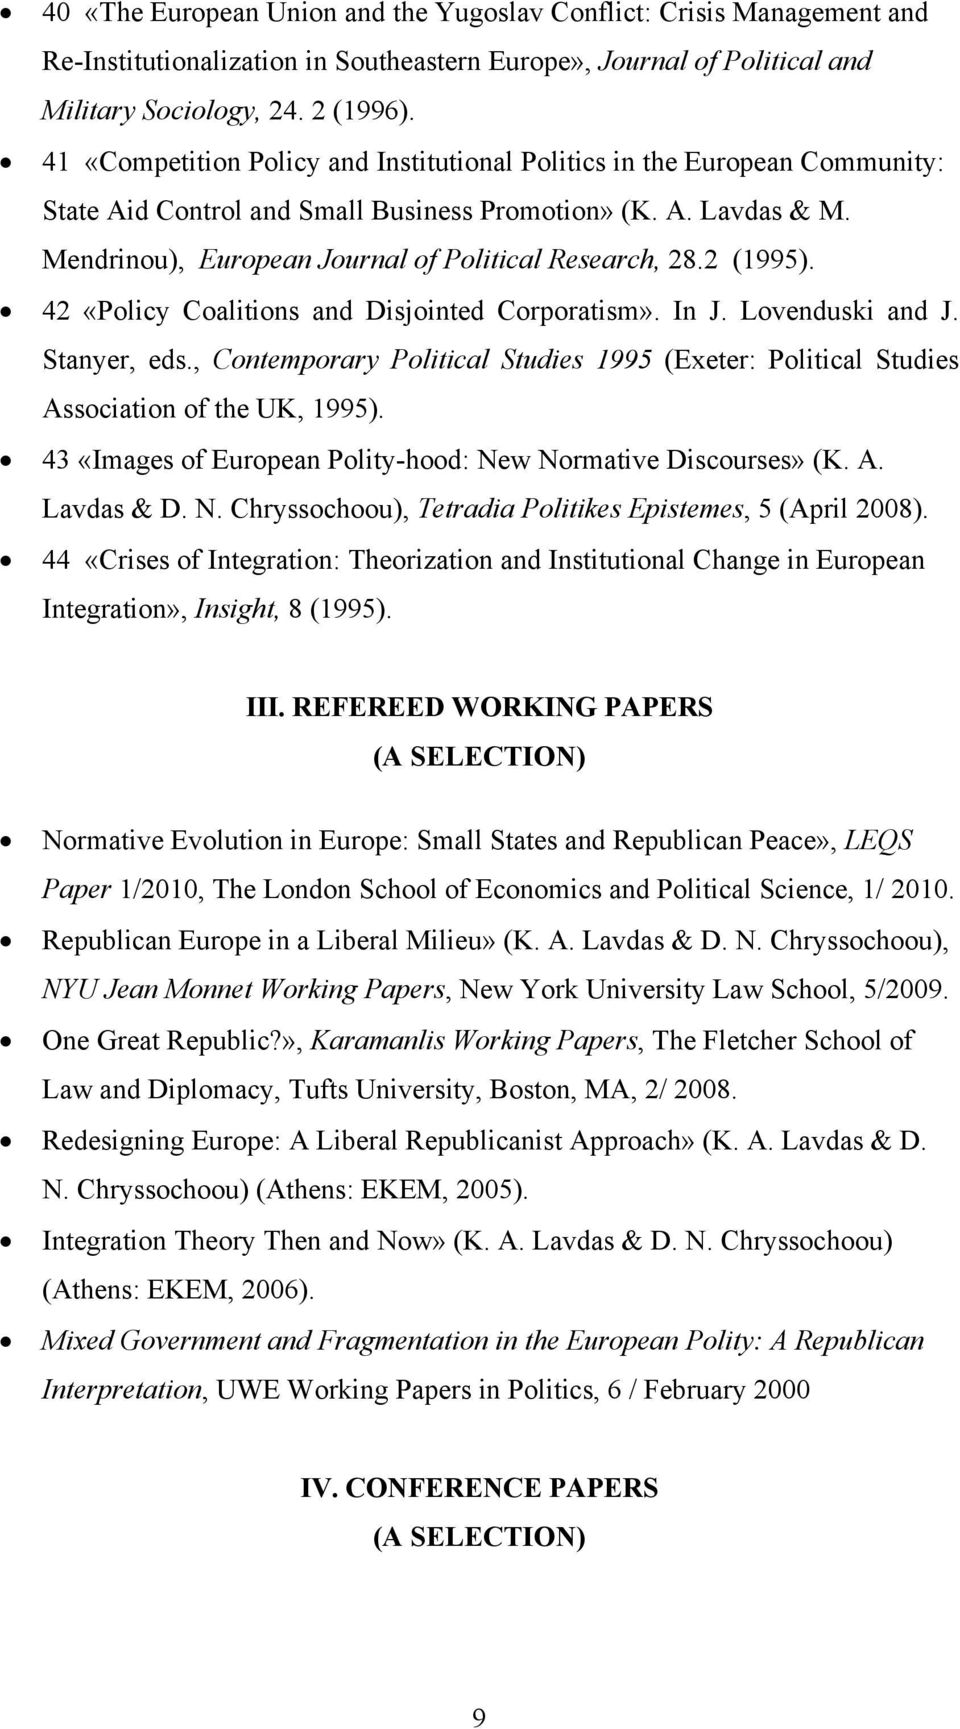 2 (1995). 42 «Policy Coalitions and Disjointed Corporatism». In J. Lovenduski and J. Stanyer, eds., Contemporary Political Studies 1995 (Exeter: Political Studies Association of the UK, 1995).